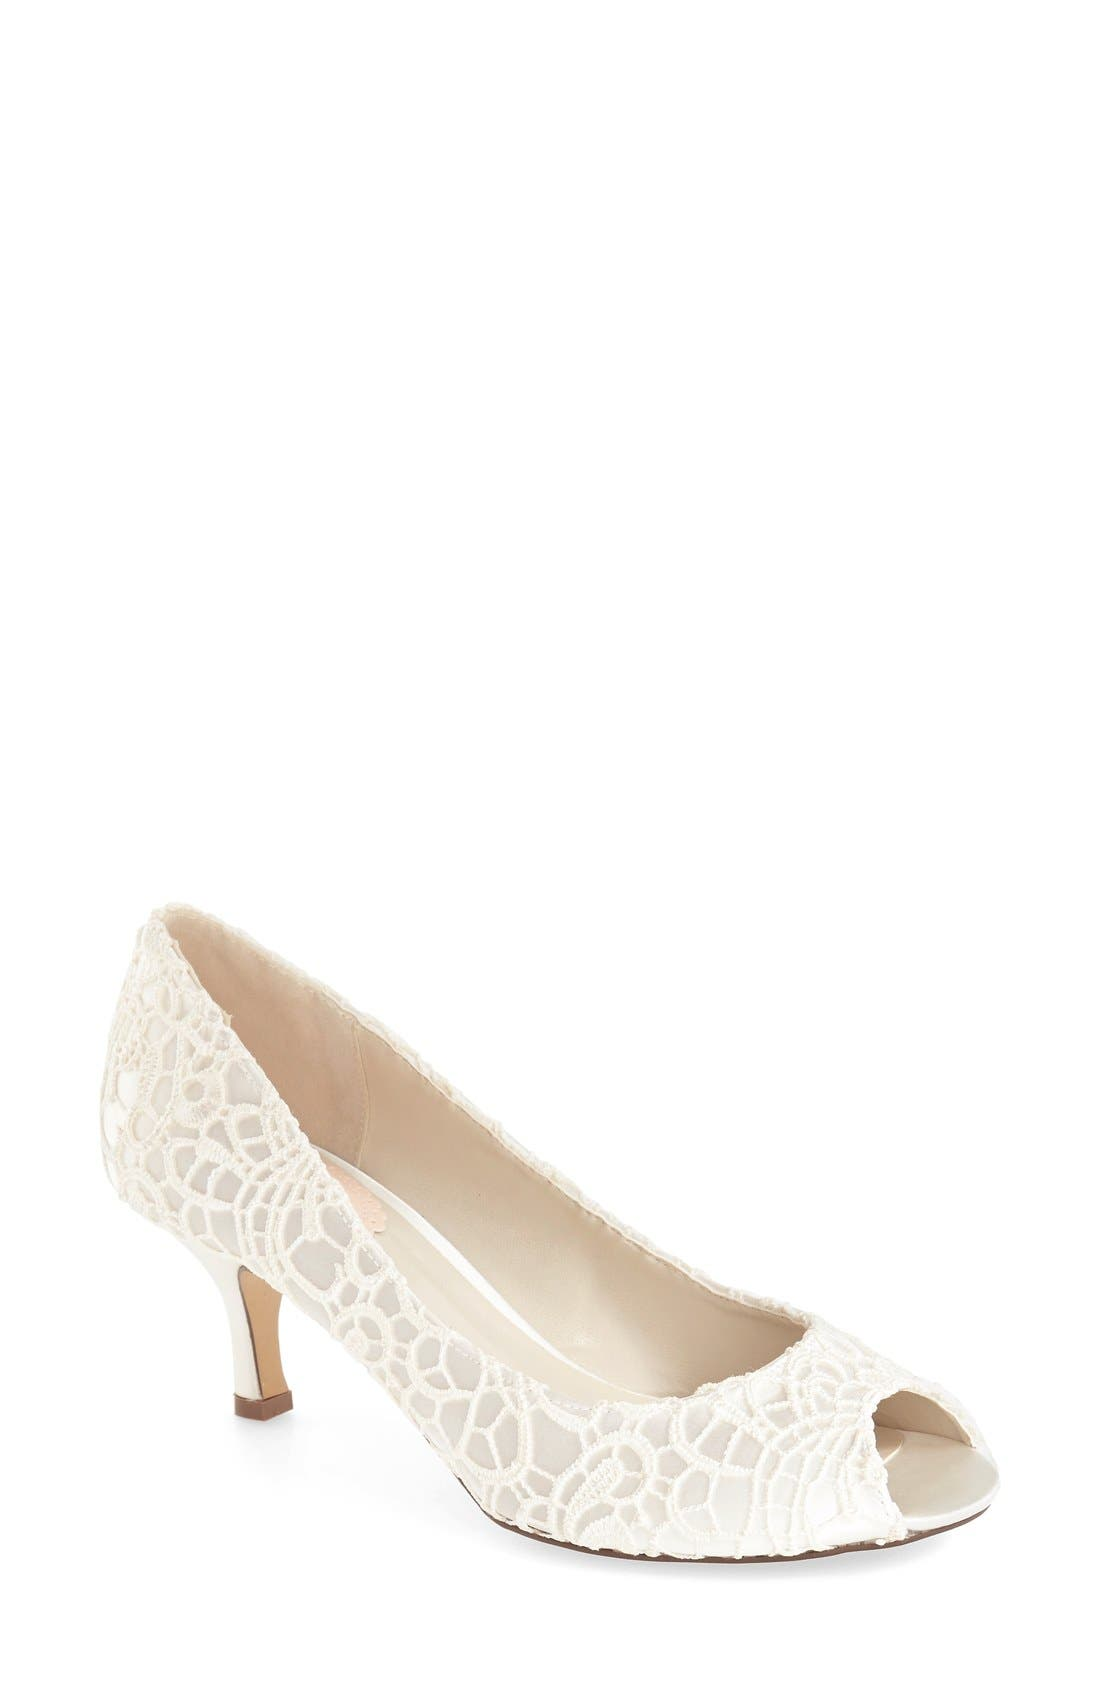 'Emotion' Peep Toe Pump,                         Main,                         color, IVORY